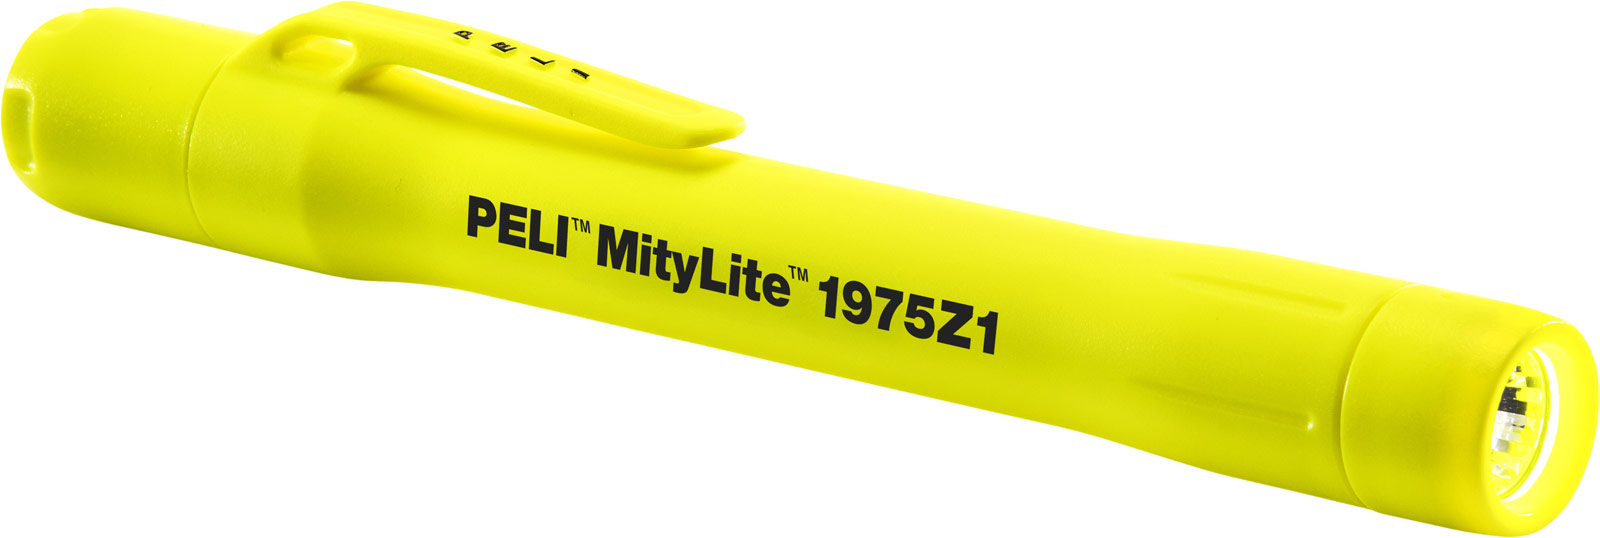 peli mitylite 1975z1 flashlight